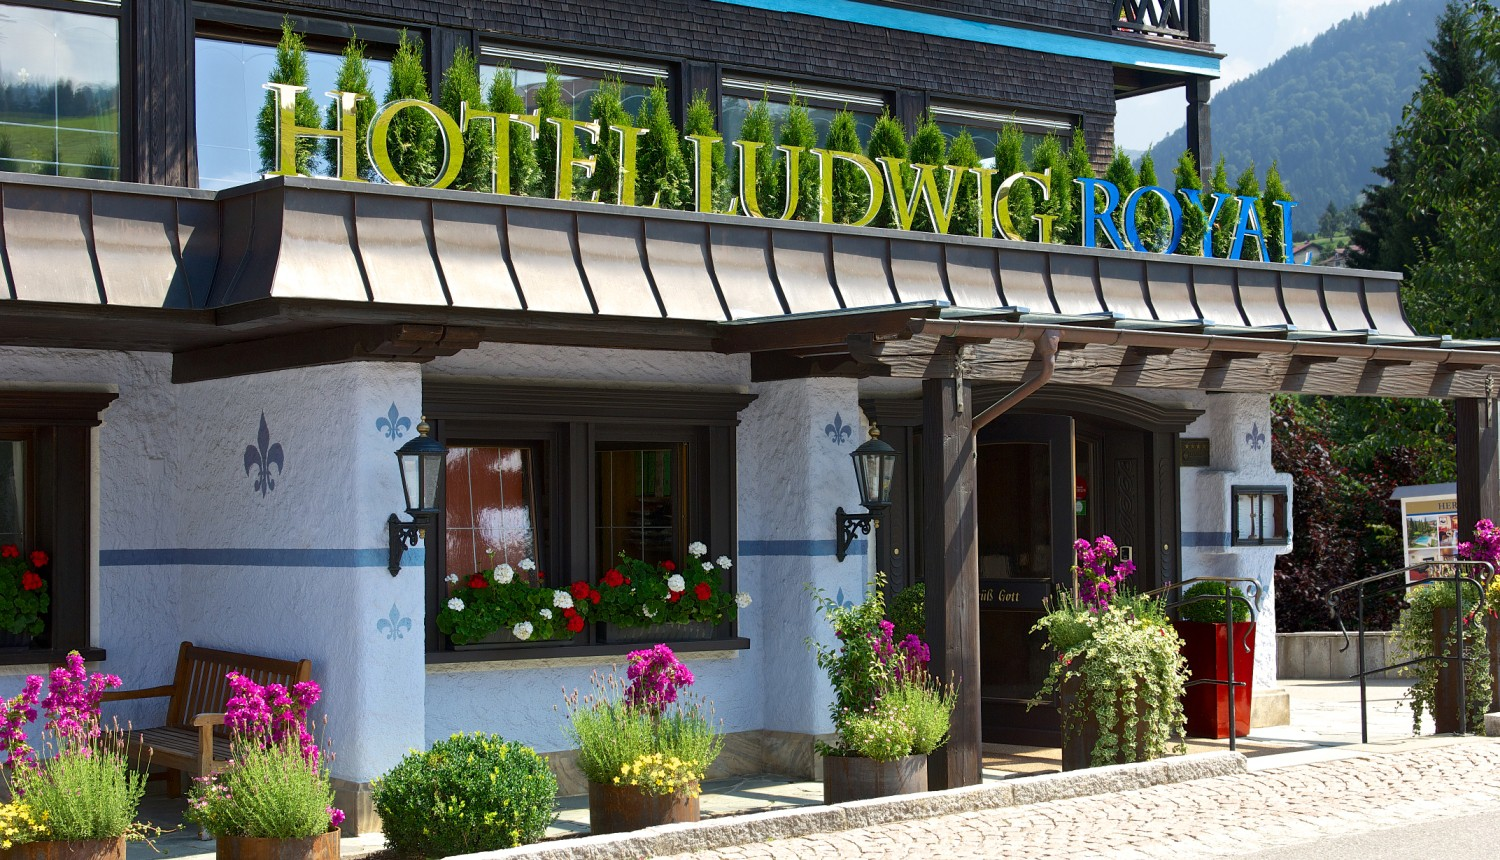 4 days relaxing in 4 **** S Hotel Ludwig Royal in Oberstaufen - Allgäu